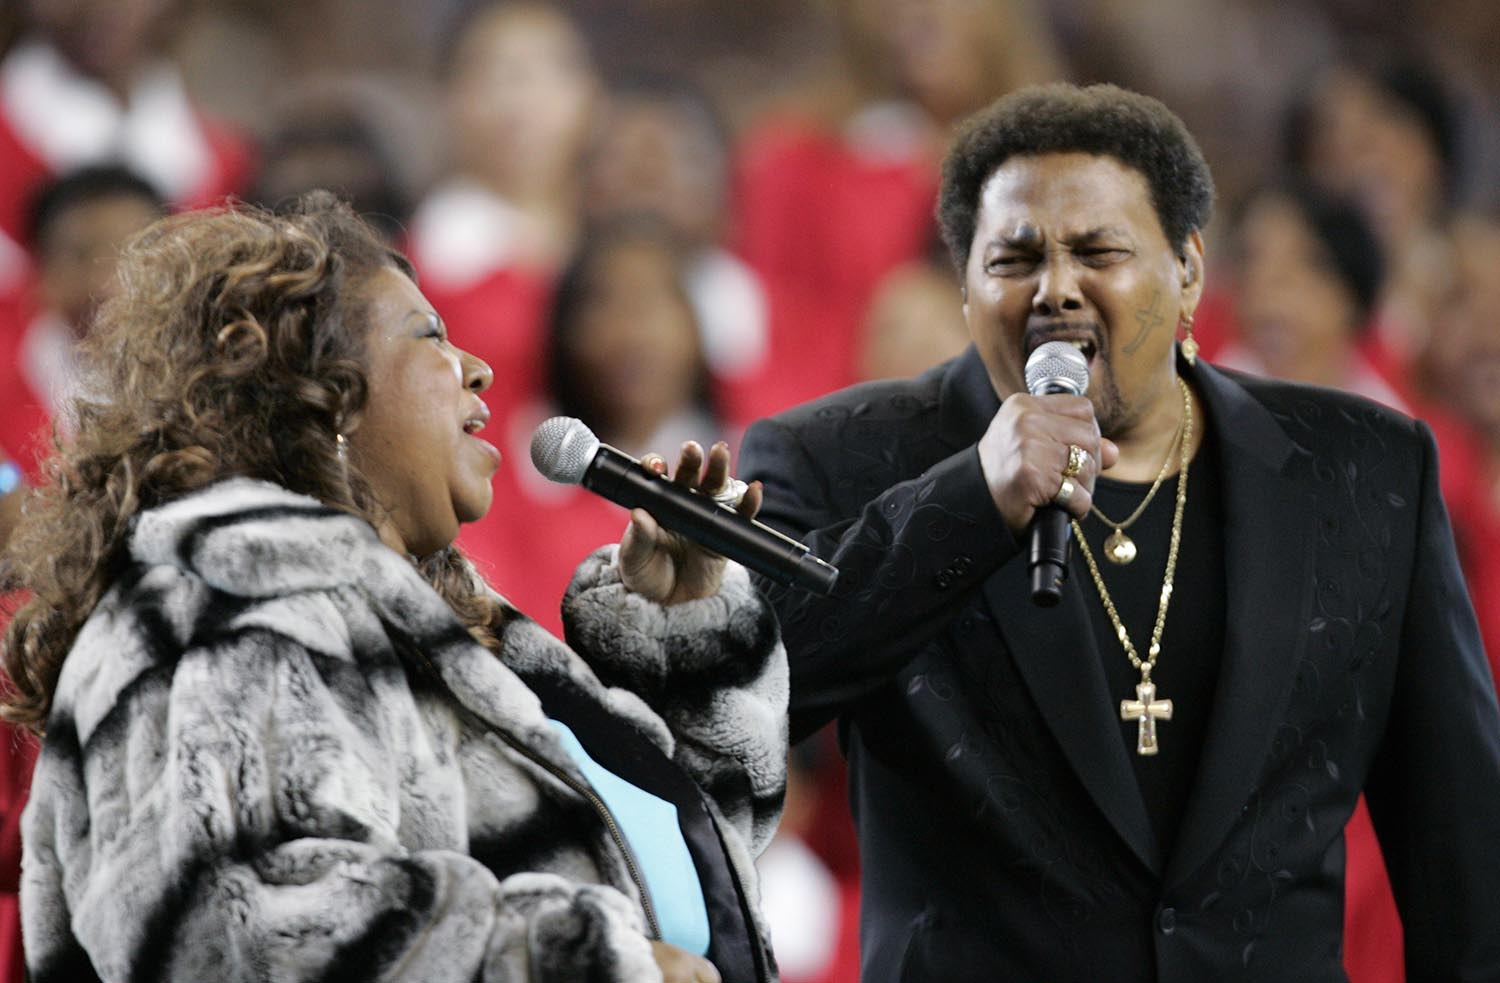 <div class='meta'><div class='origin-logo' data-origin='AP'></div><span class='caption-text' data-credit='AP Photo/David J. Phillip'>2006: Singers Aaron Neville and Aretha Franklin perform the national anthem before the Super Bowl XL football game Sunday, Feb. 5, 2006, in Detroit.</span></div>